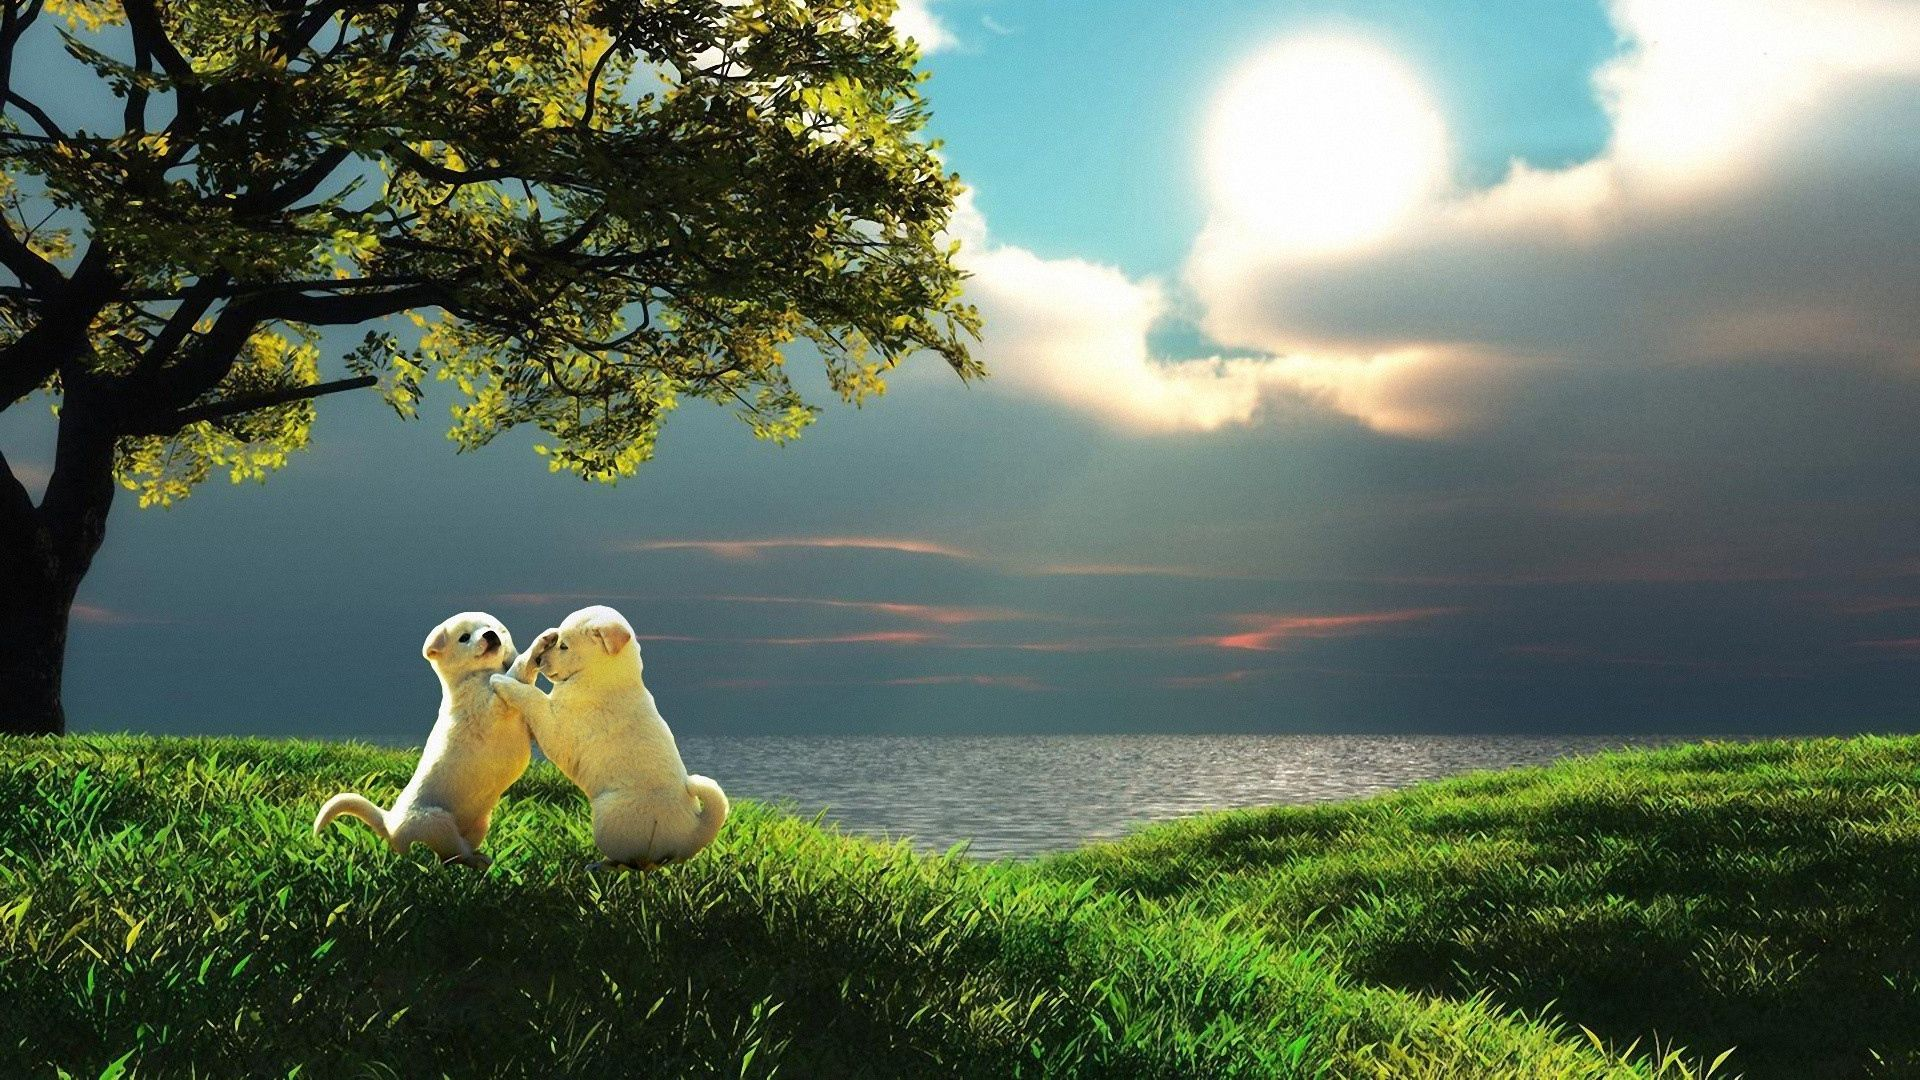 Download Wallpaper 1920x1080 Puppy Couple Sunset Nature Play